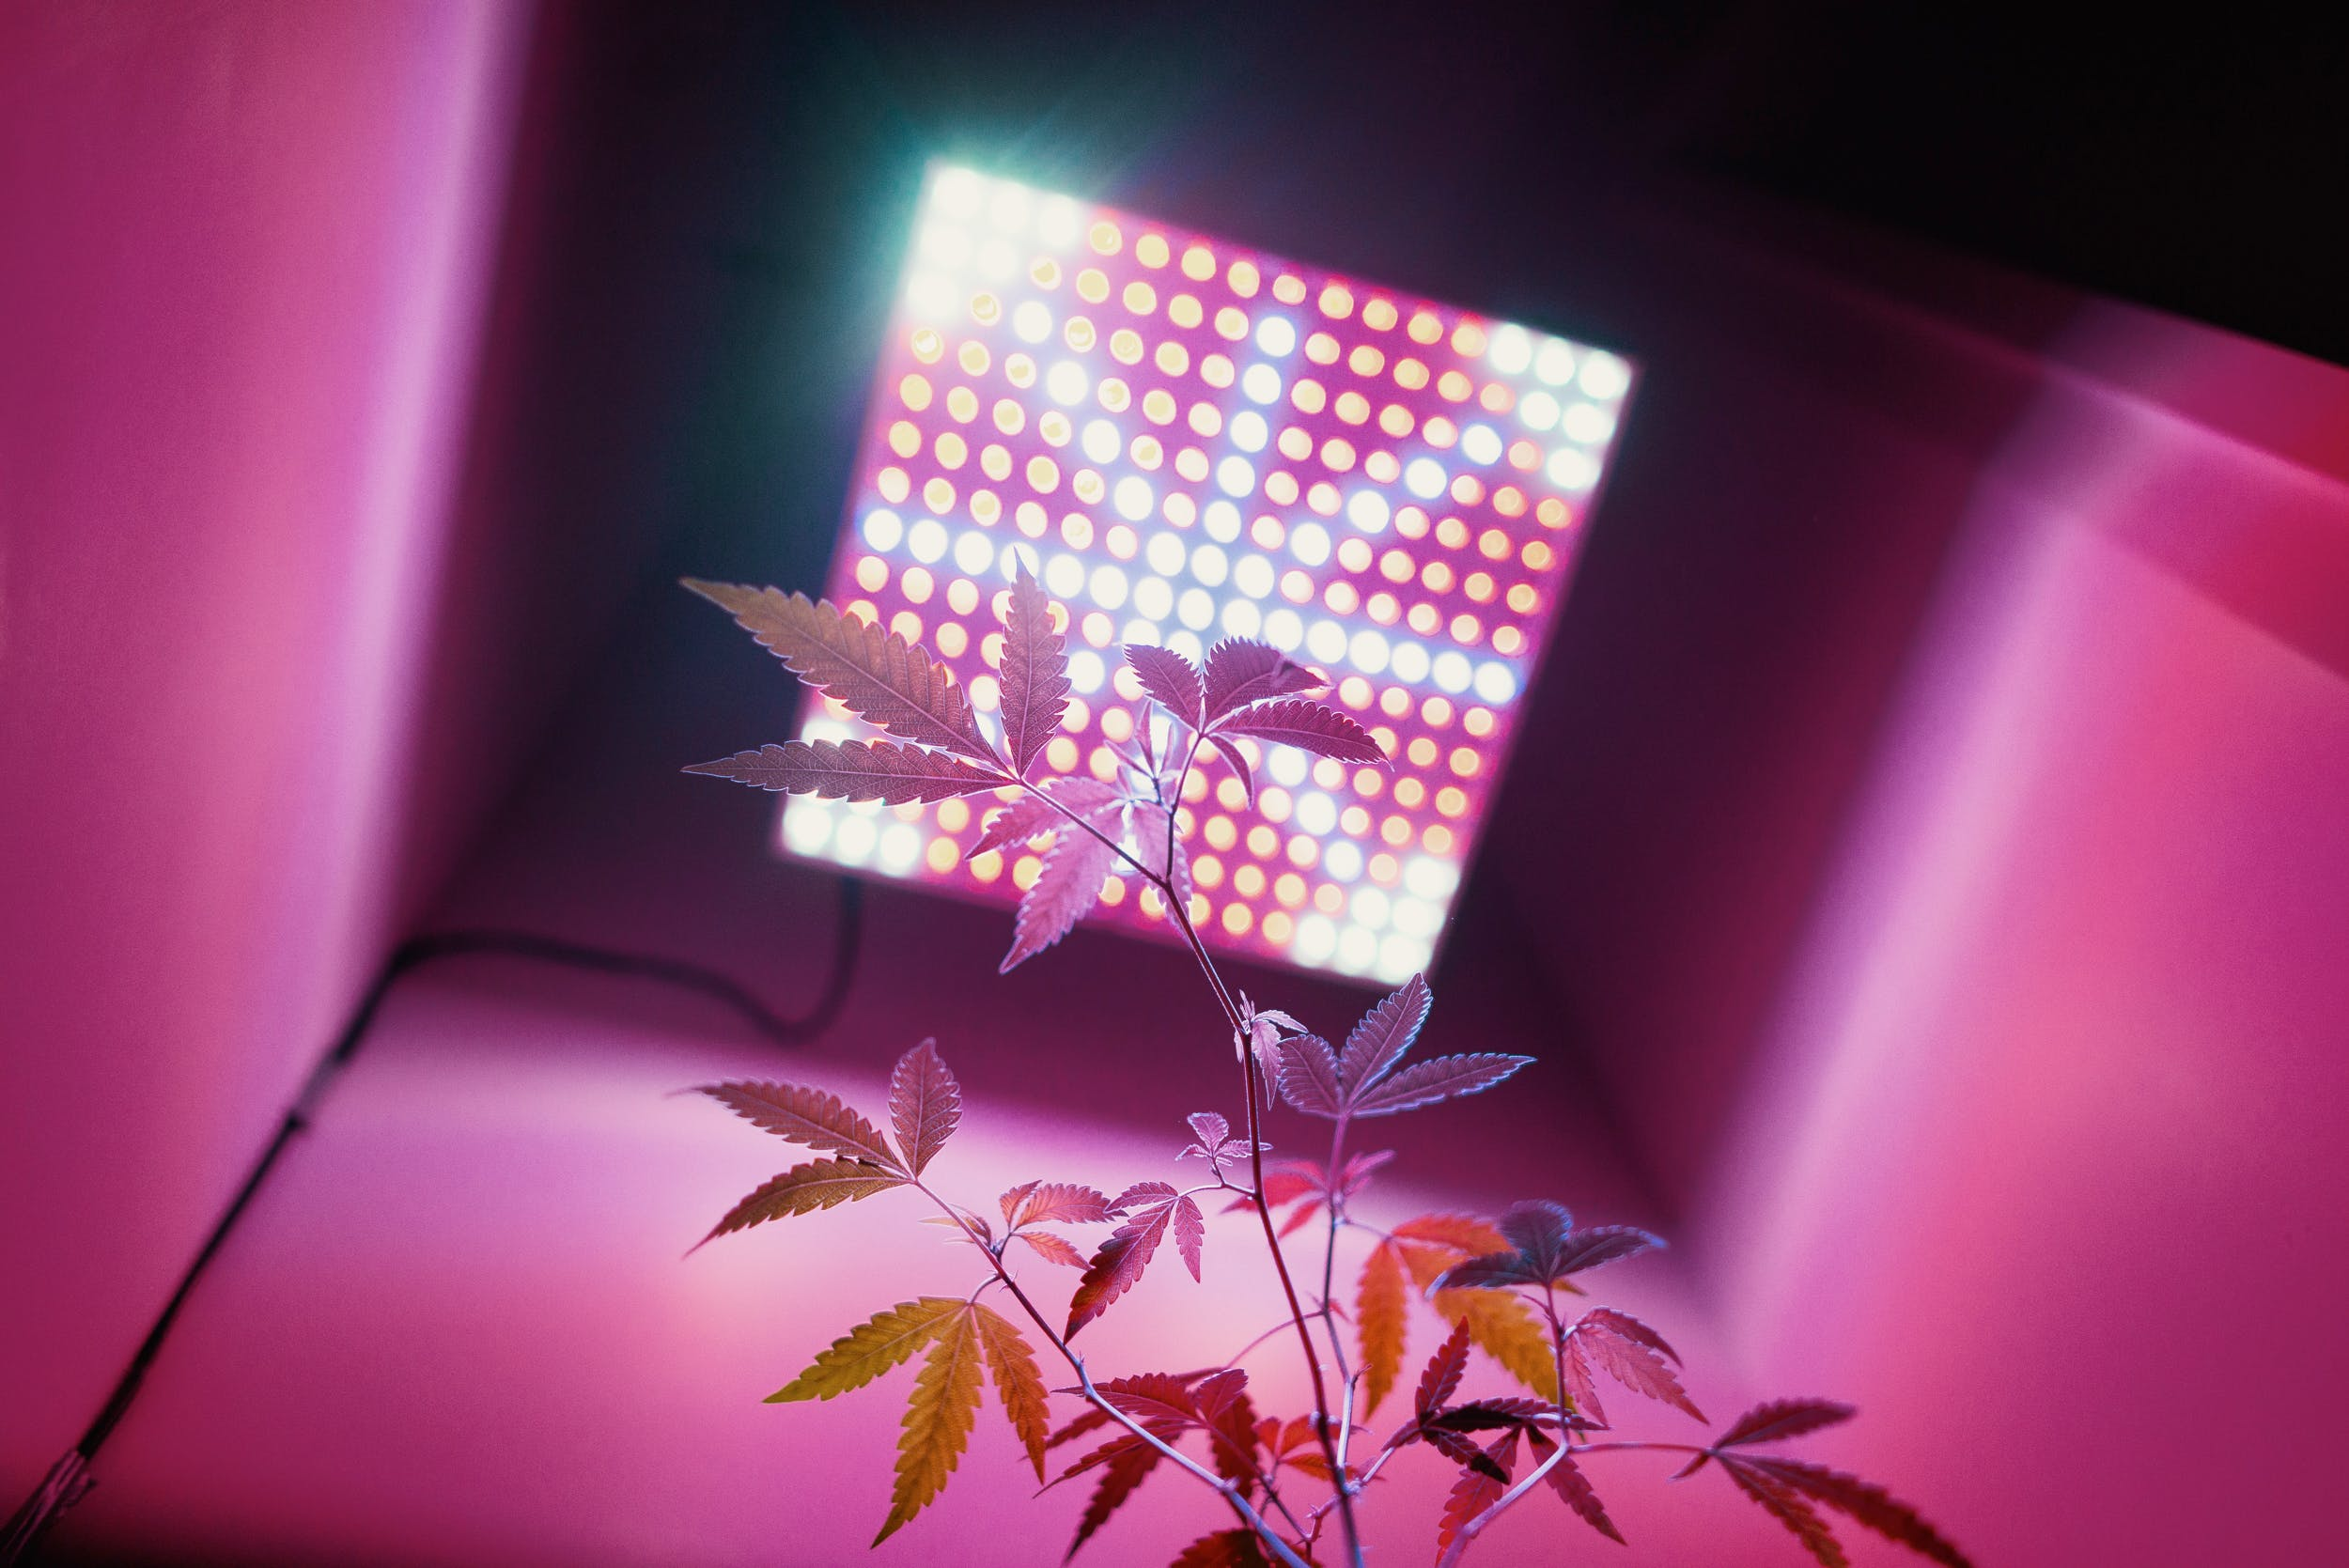 A cannabis plant illuminated by one of best LED grow lights